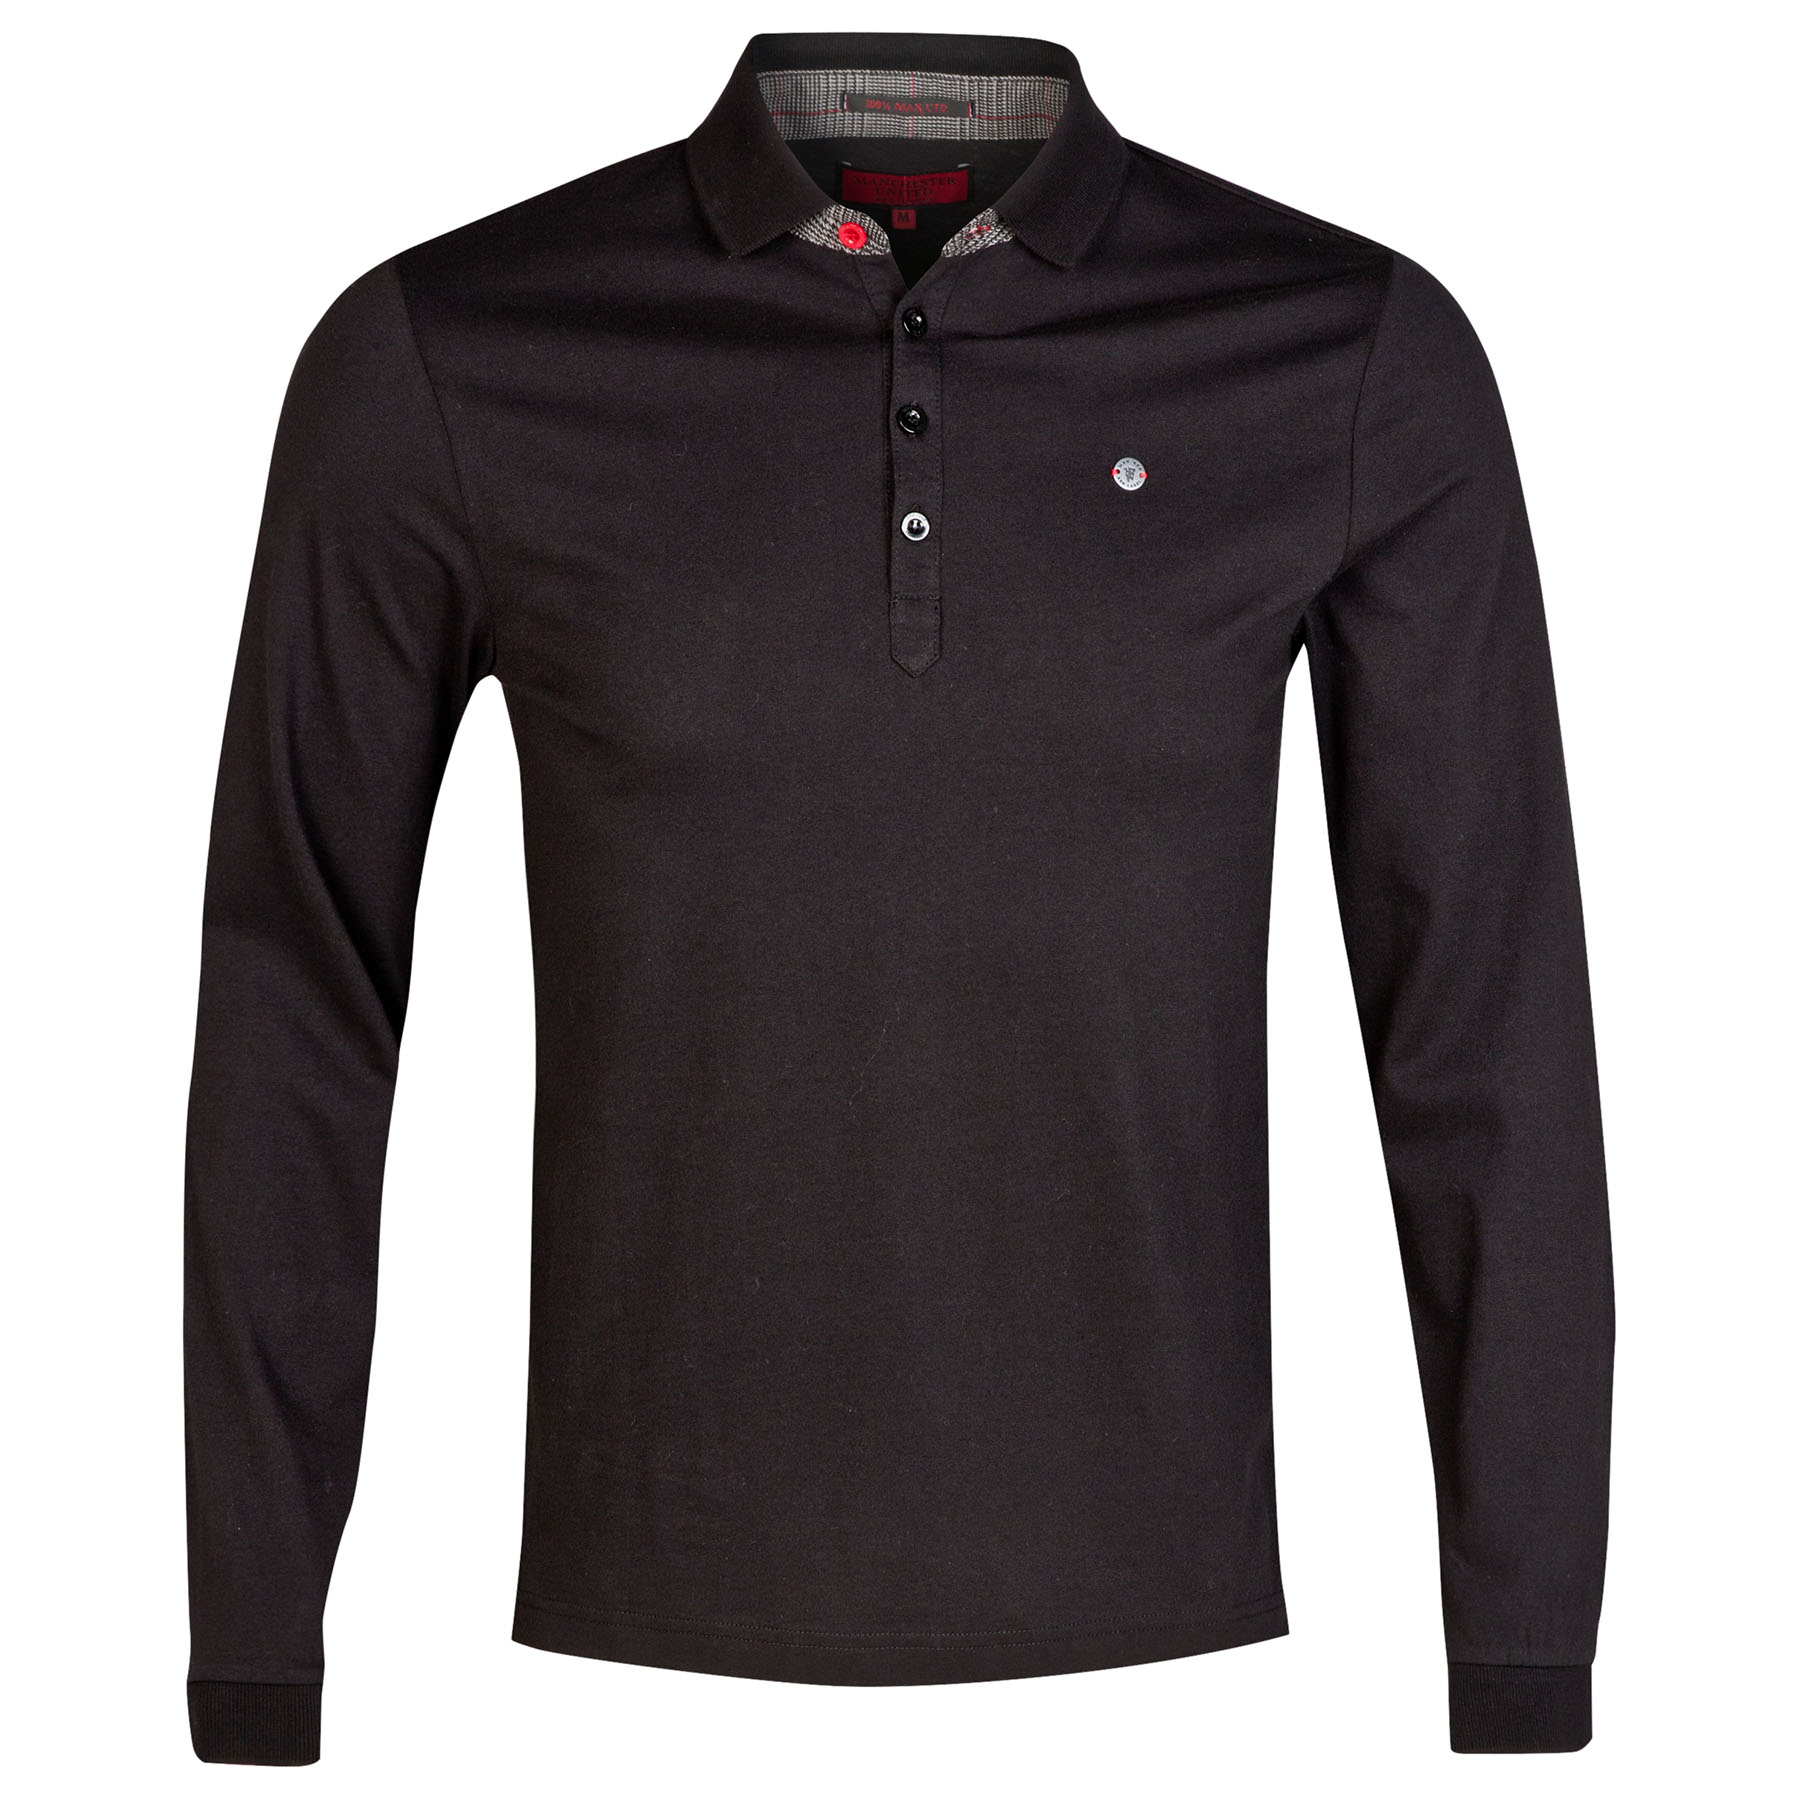 Manchester United Red Label Long Sleeve Polo Shirt - Black - Mens